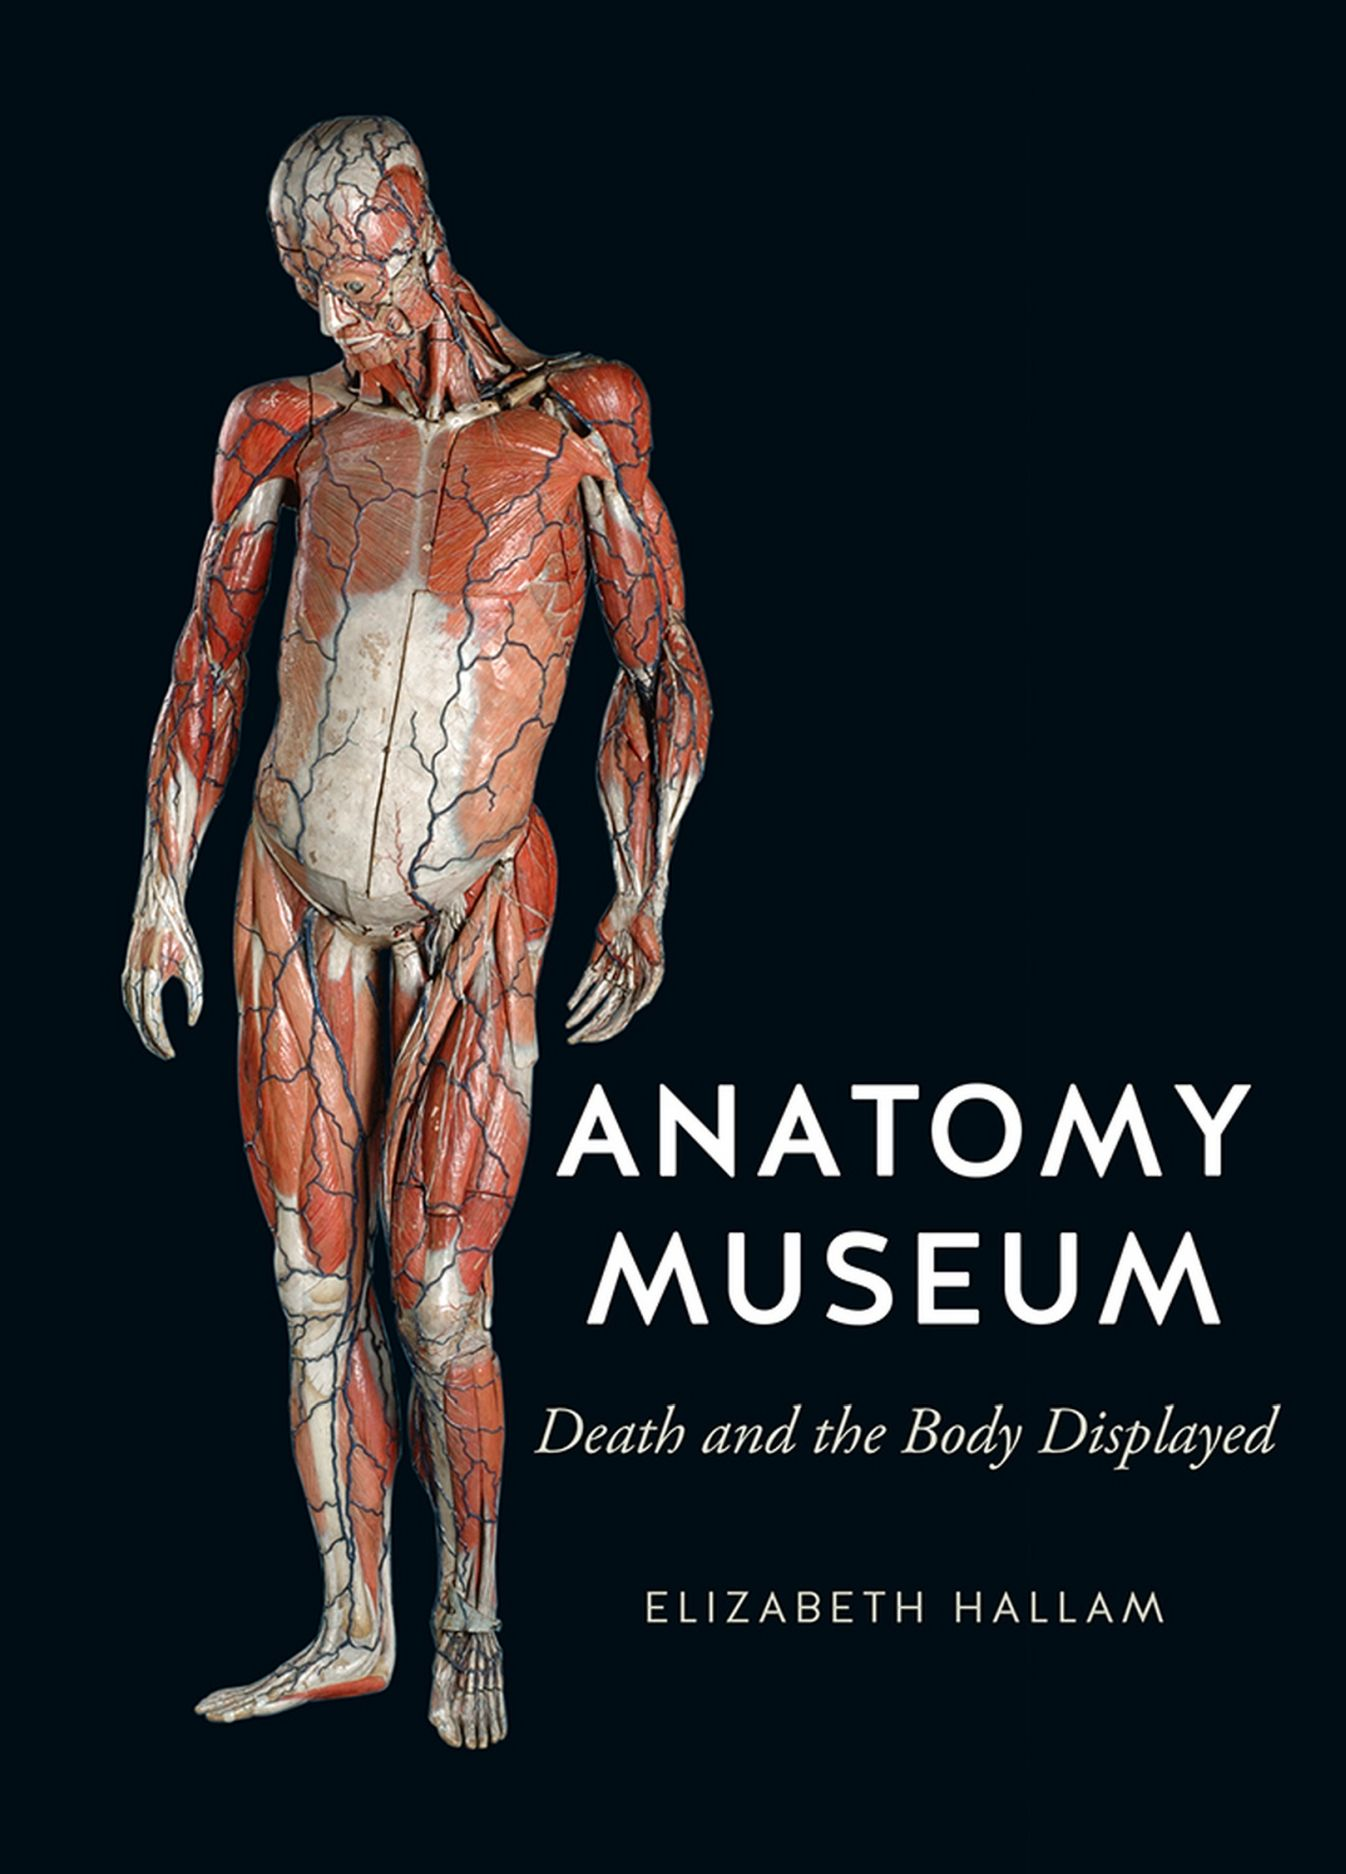 Anatomy Museum: Death and the Body Displayed